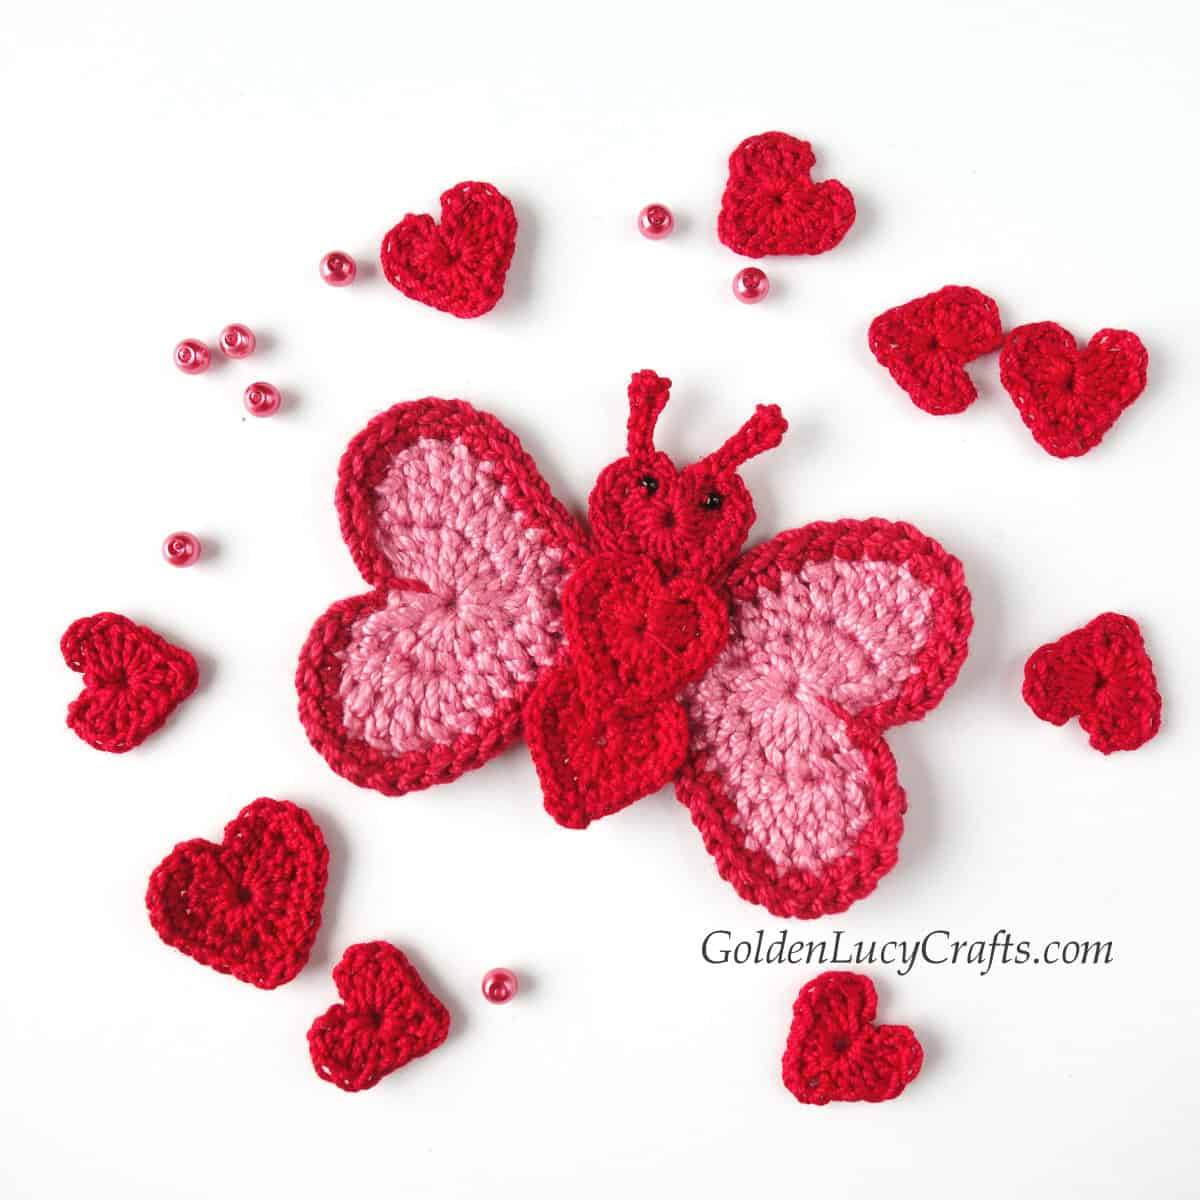 Crochet butterfly applique made from hearts, small hearts and beads around it.